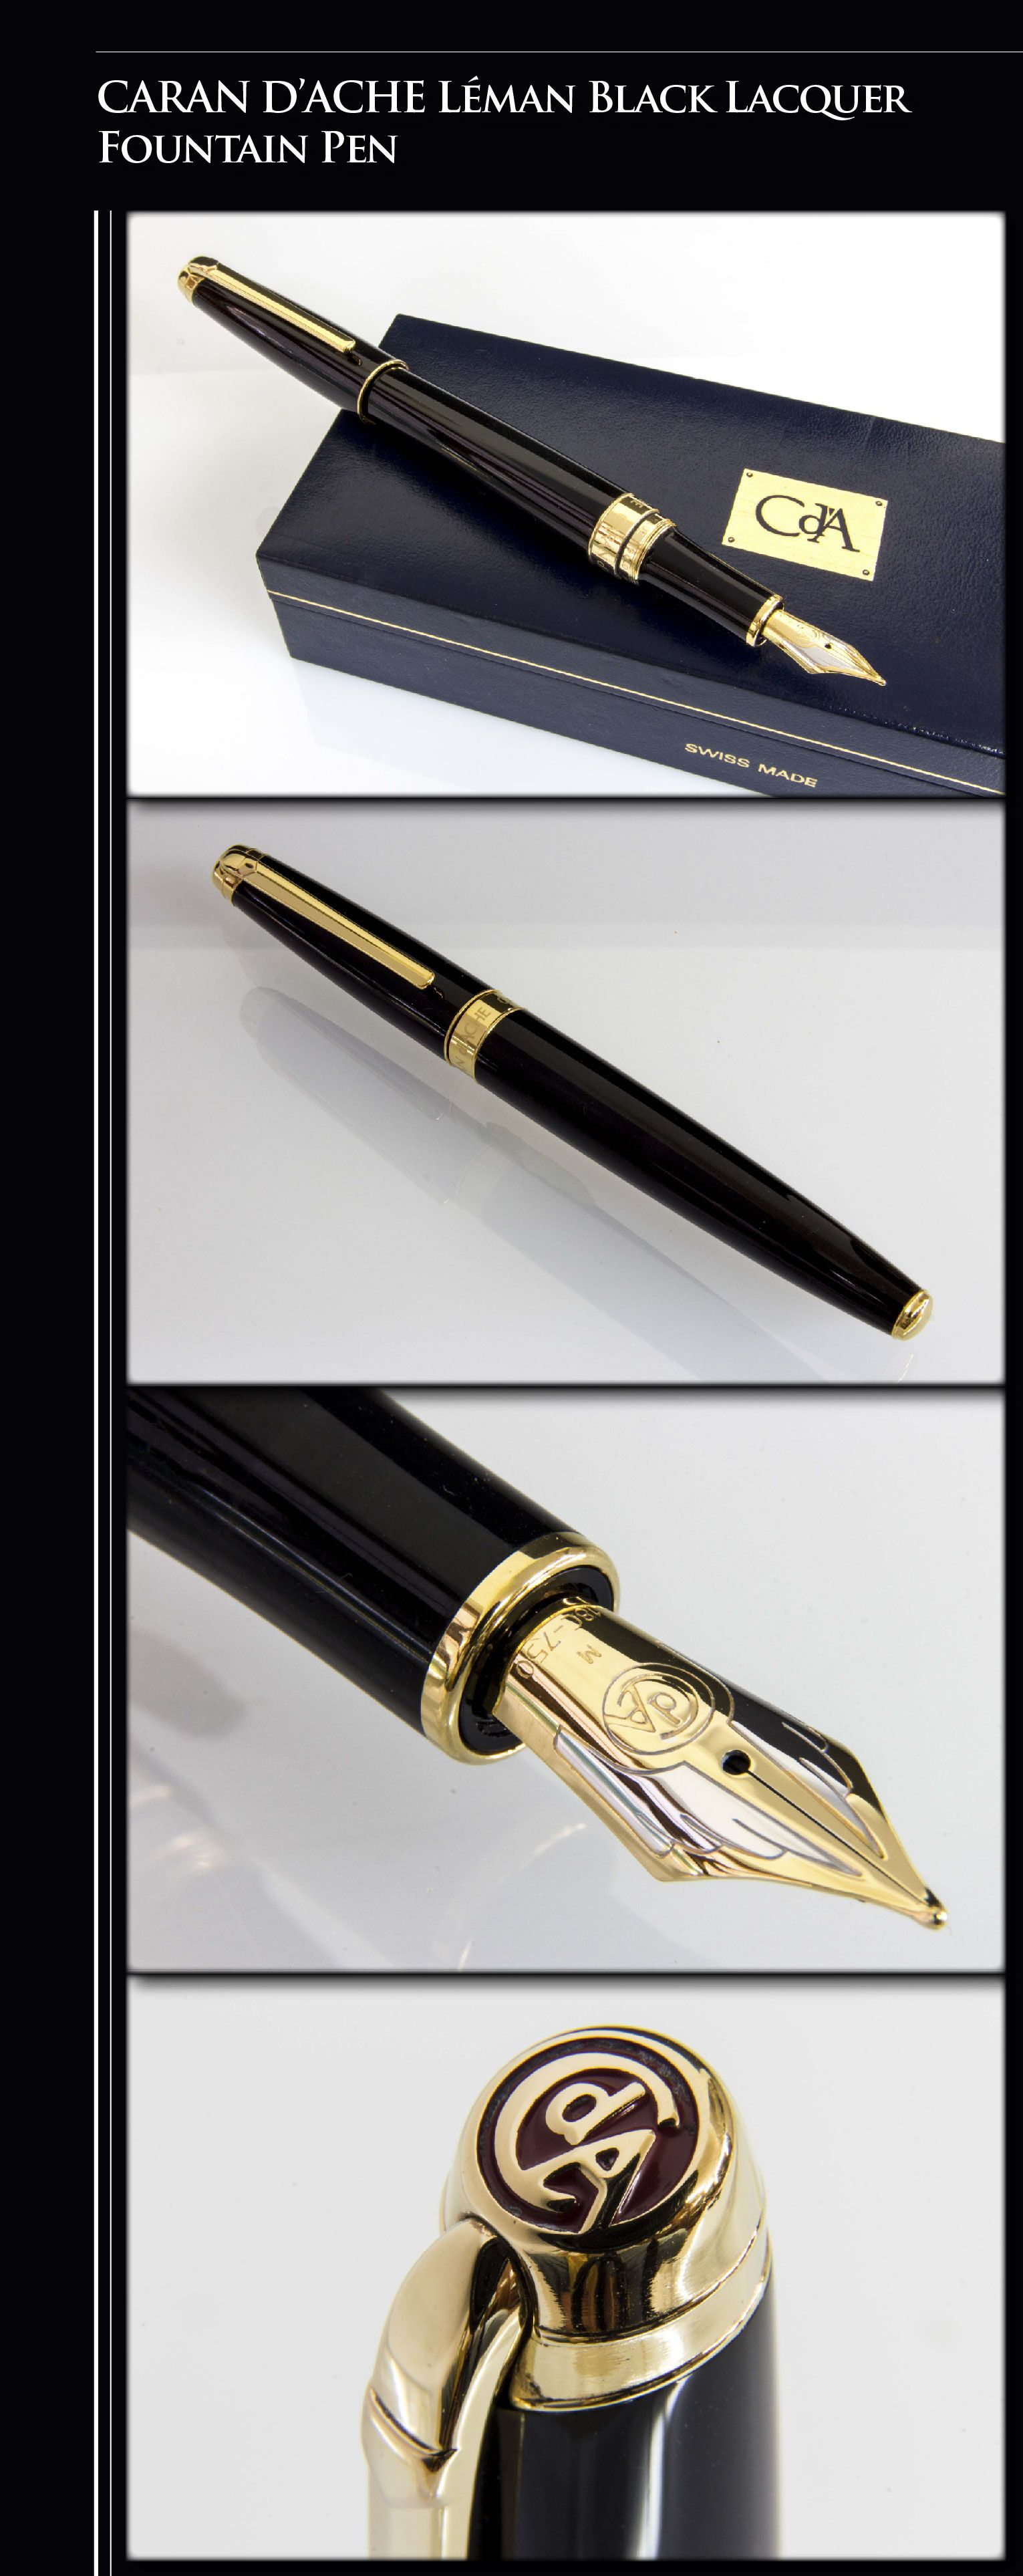 CARAN D'ACHE - Léman Black Lacquer Fountain Pen (brass body coated with Chinese lacquer, gold-plated trim, 18kt gold dual-tone nib) - 2010 / Switzerland